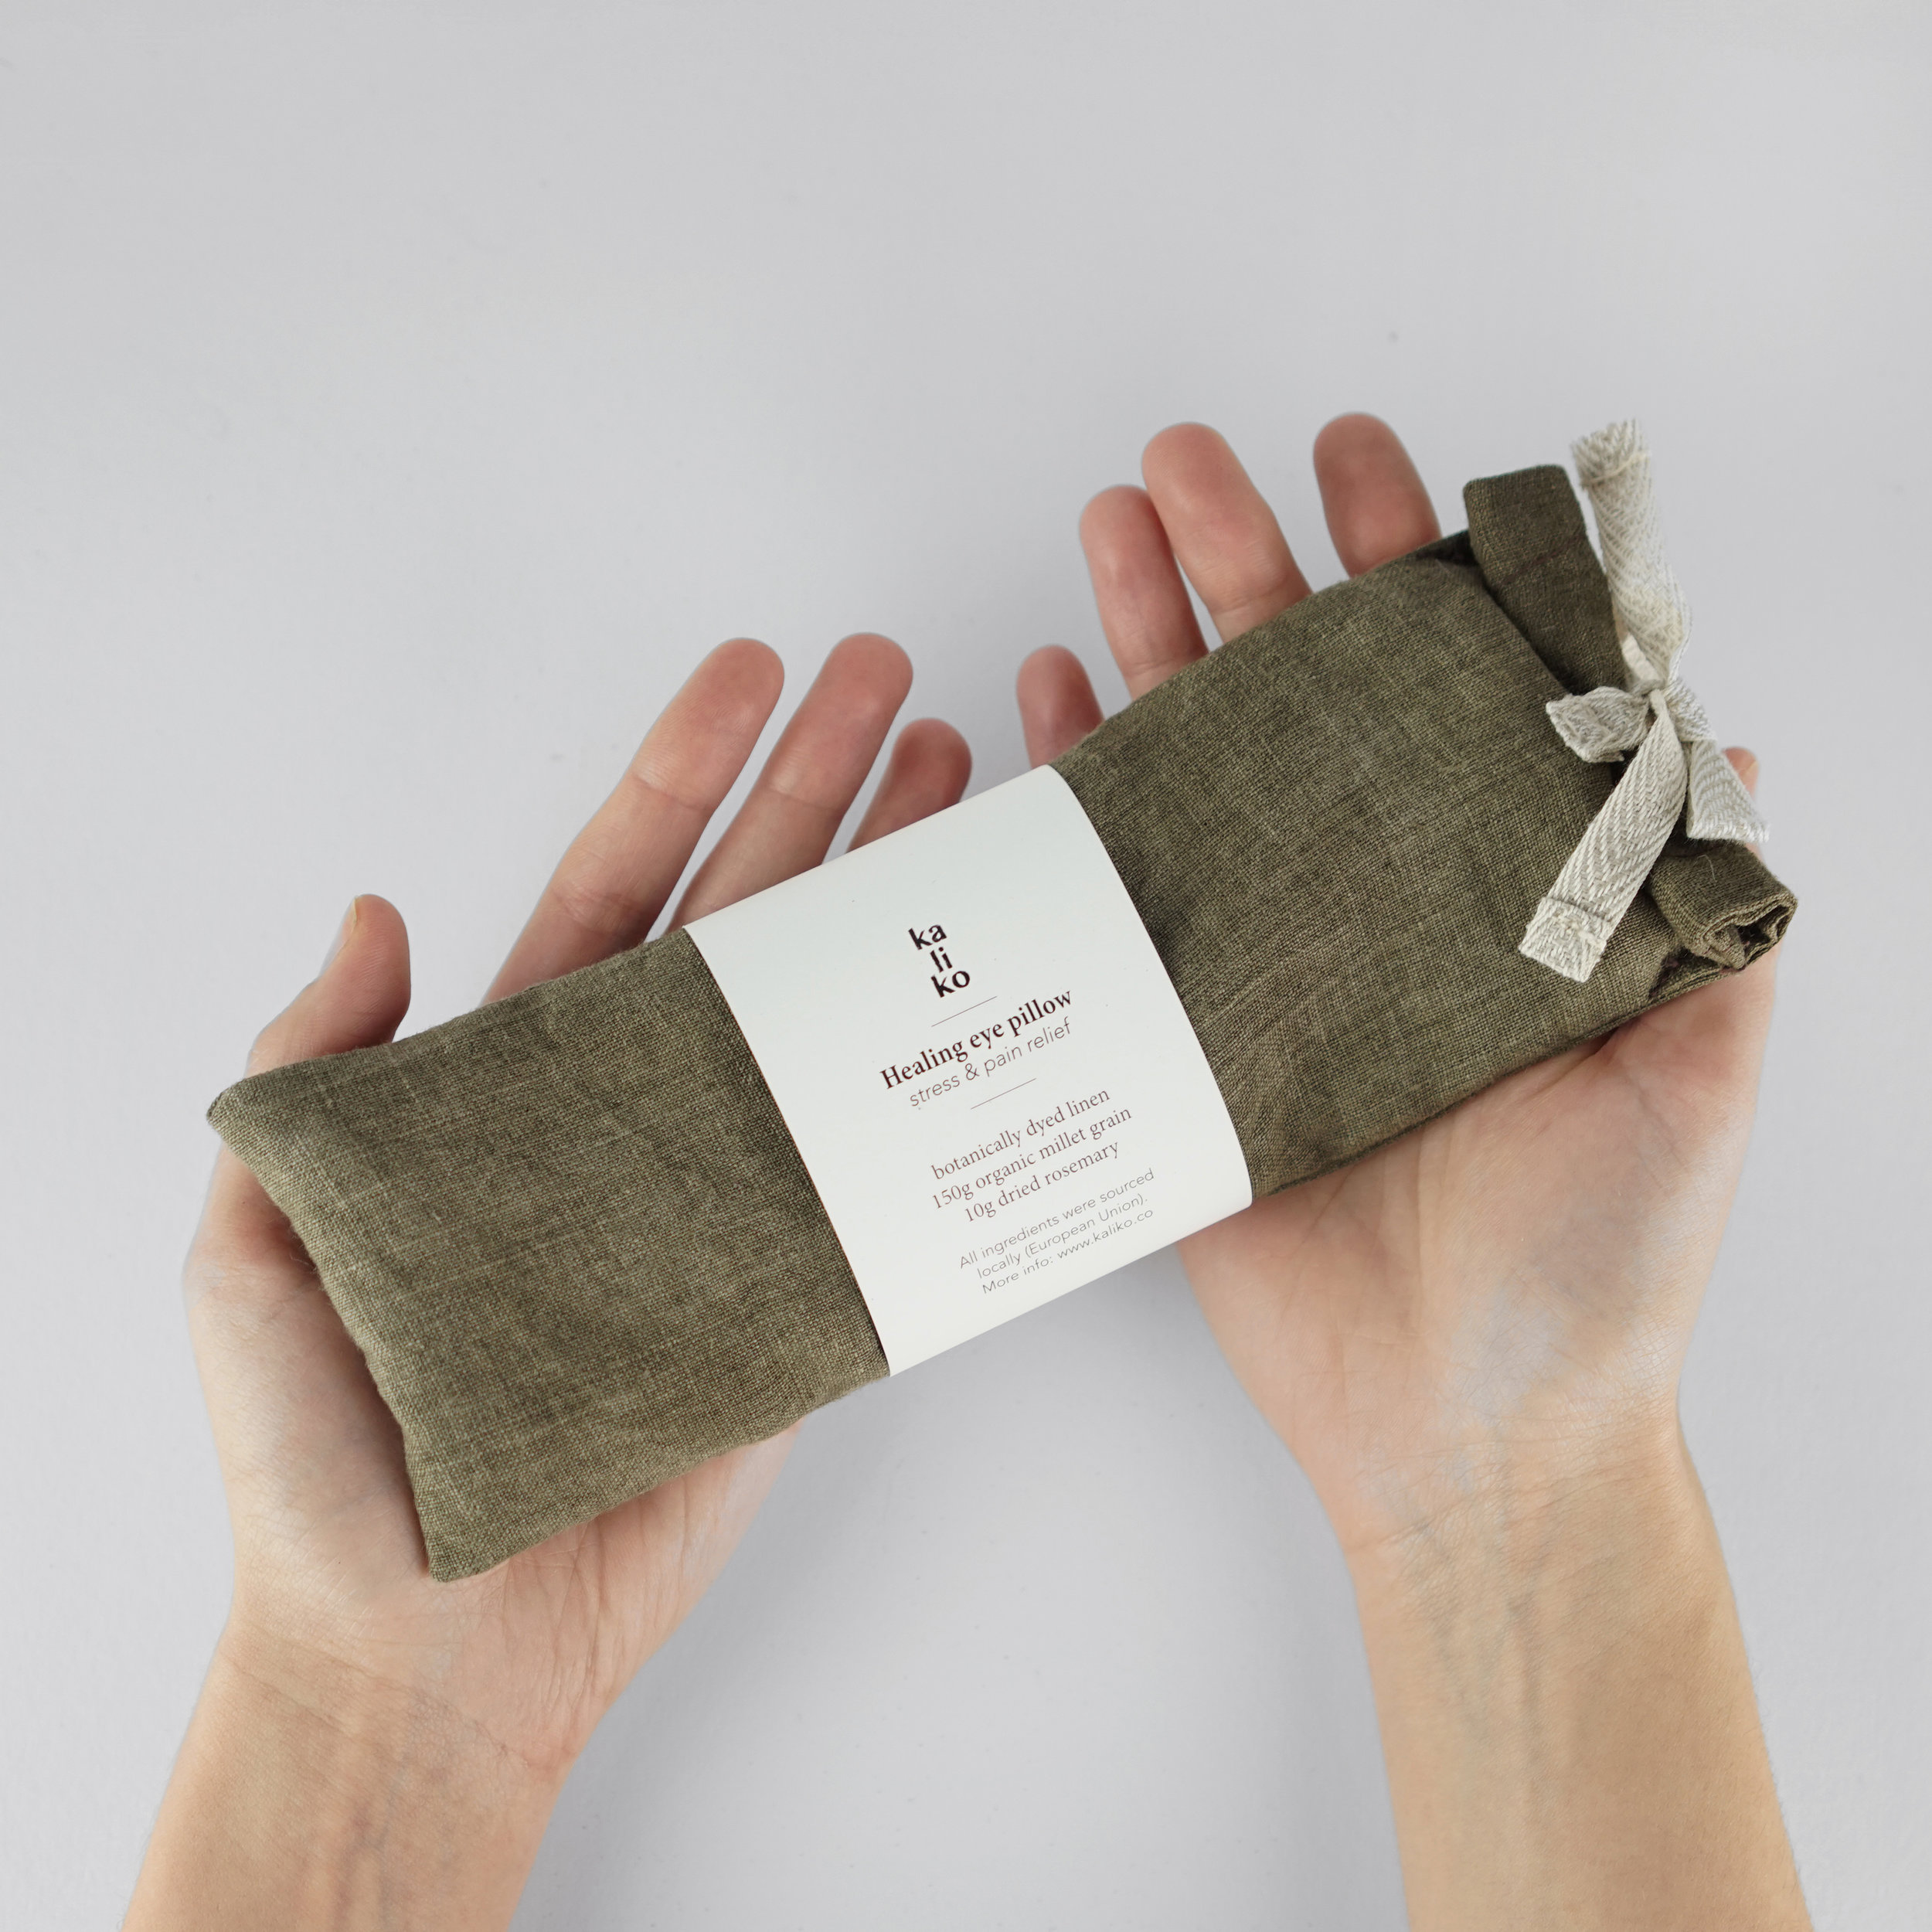 The Etsies - I nominate plant dyed eye pillows filled with grains and herbs!